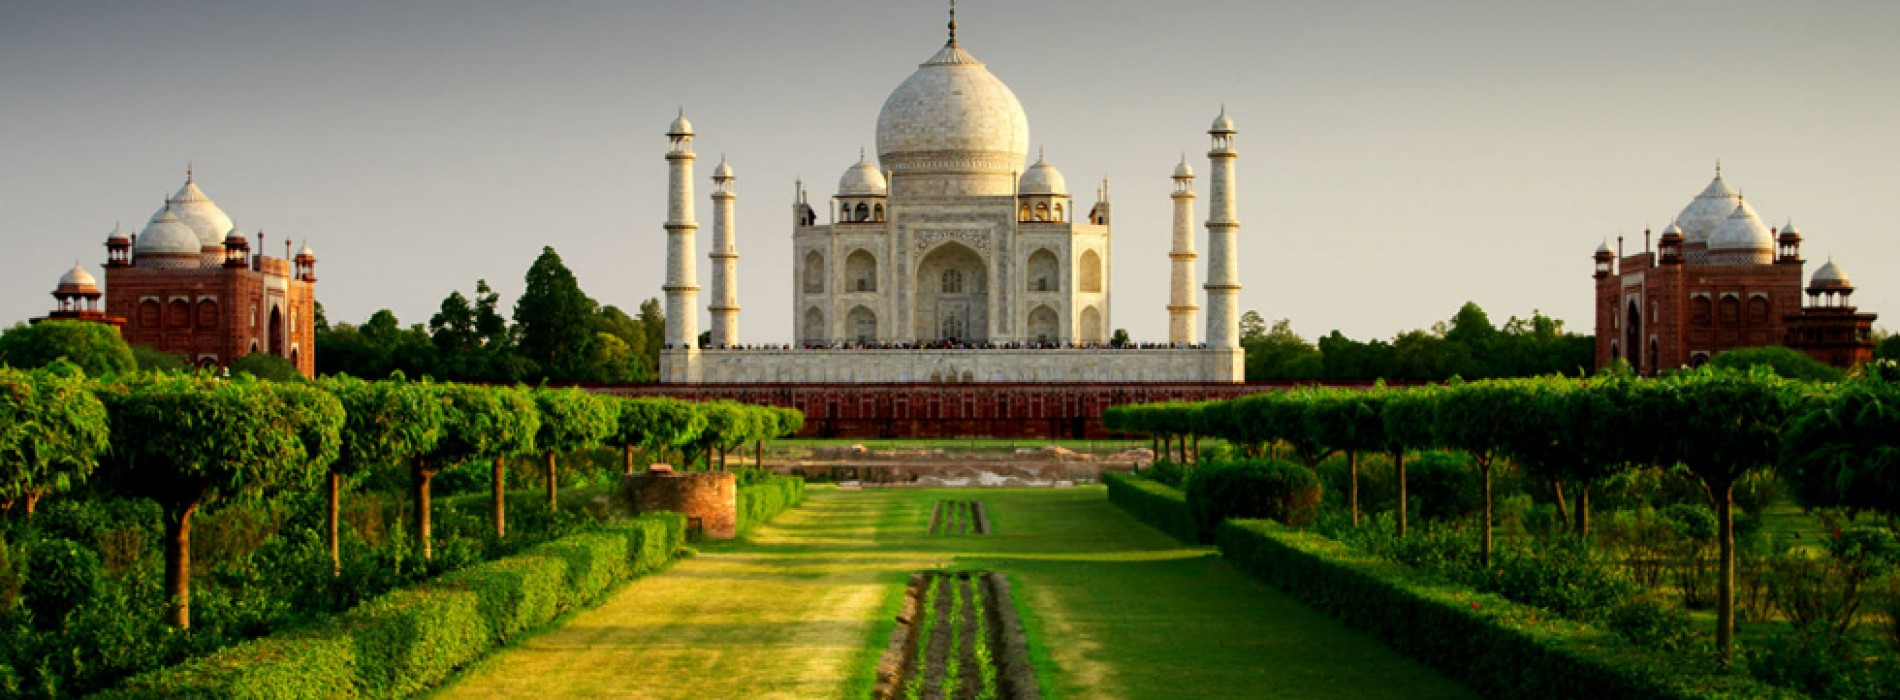 Taj Mahal to limit visitor time and numbers to ease congestion